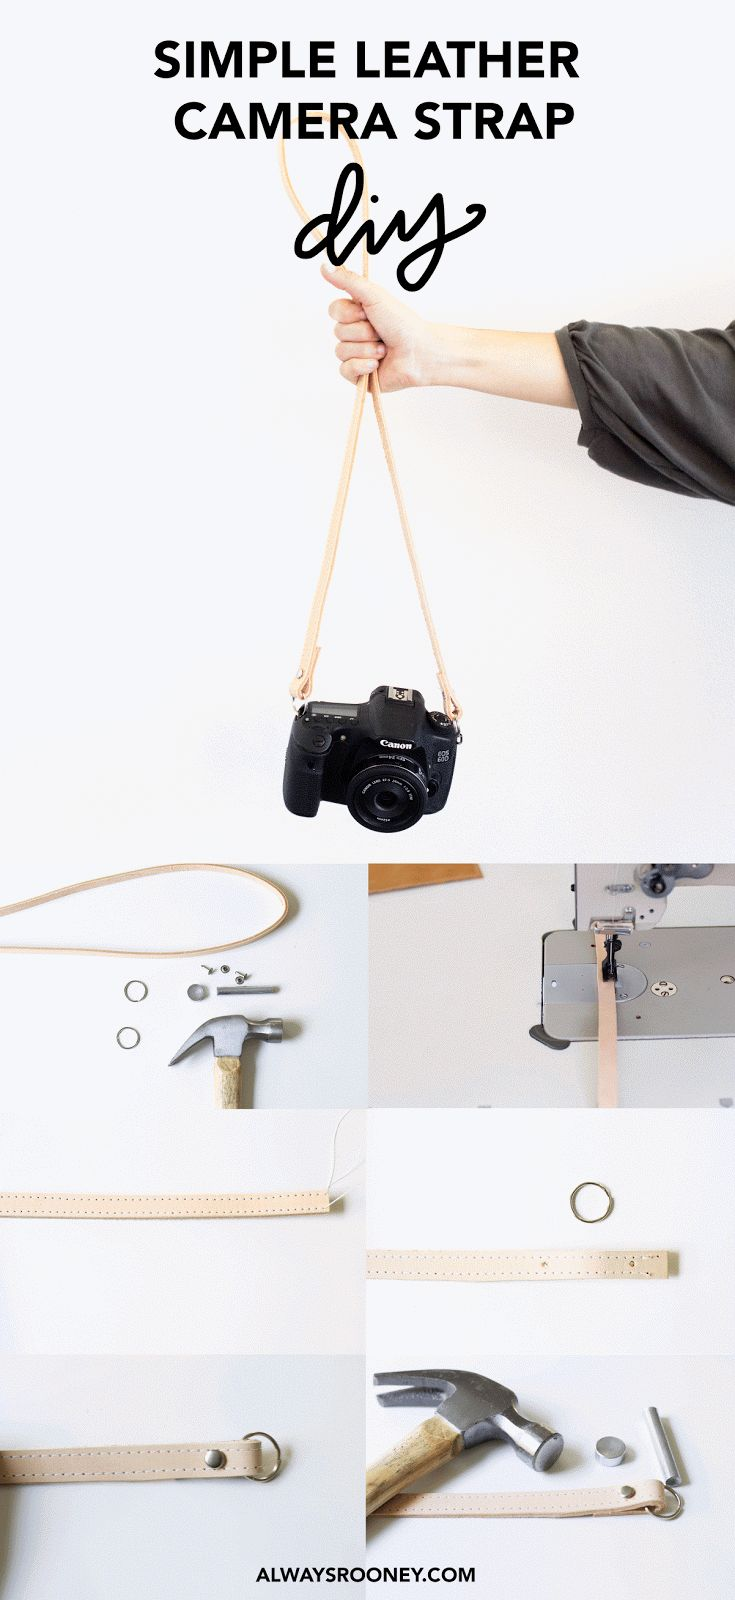 It was about time I re-made my original Simple Leather Camera Strap DIY  since I recently gave my original strap away to a friend. This...